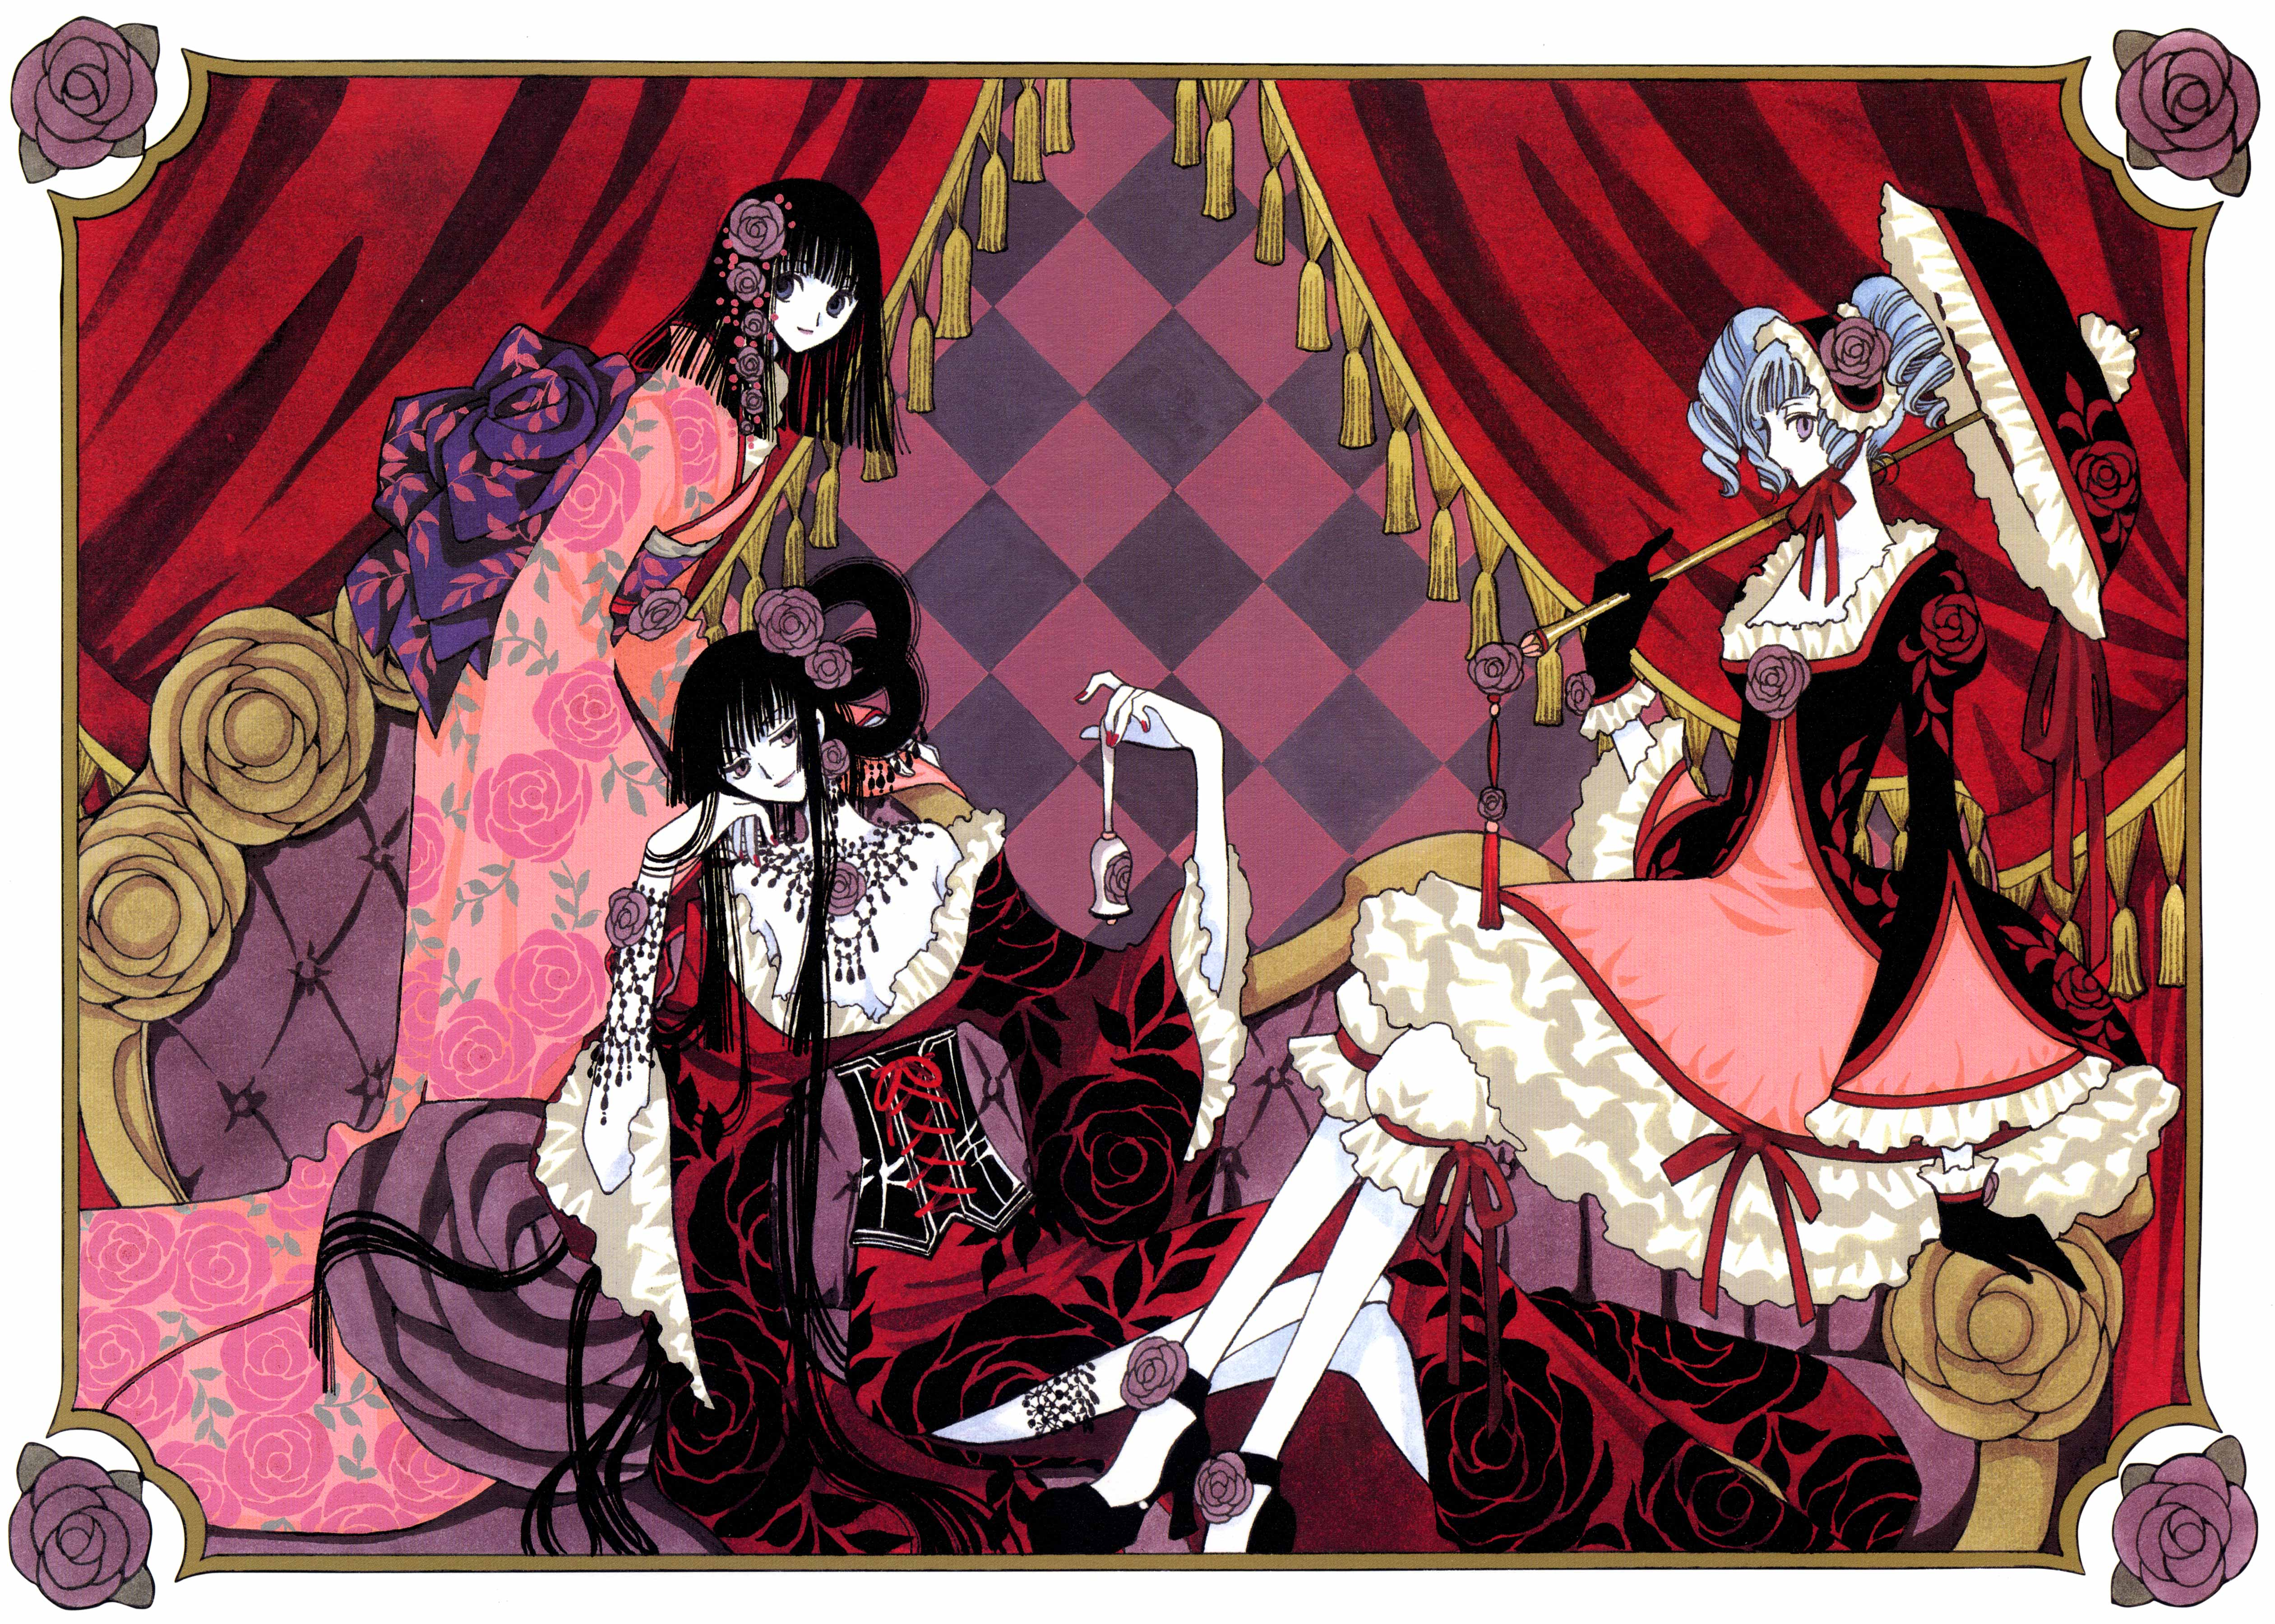 Cute November Calendar Wallpaper Xxxholic Mystical Parlor Minitokyo